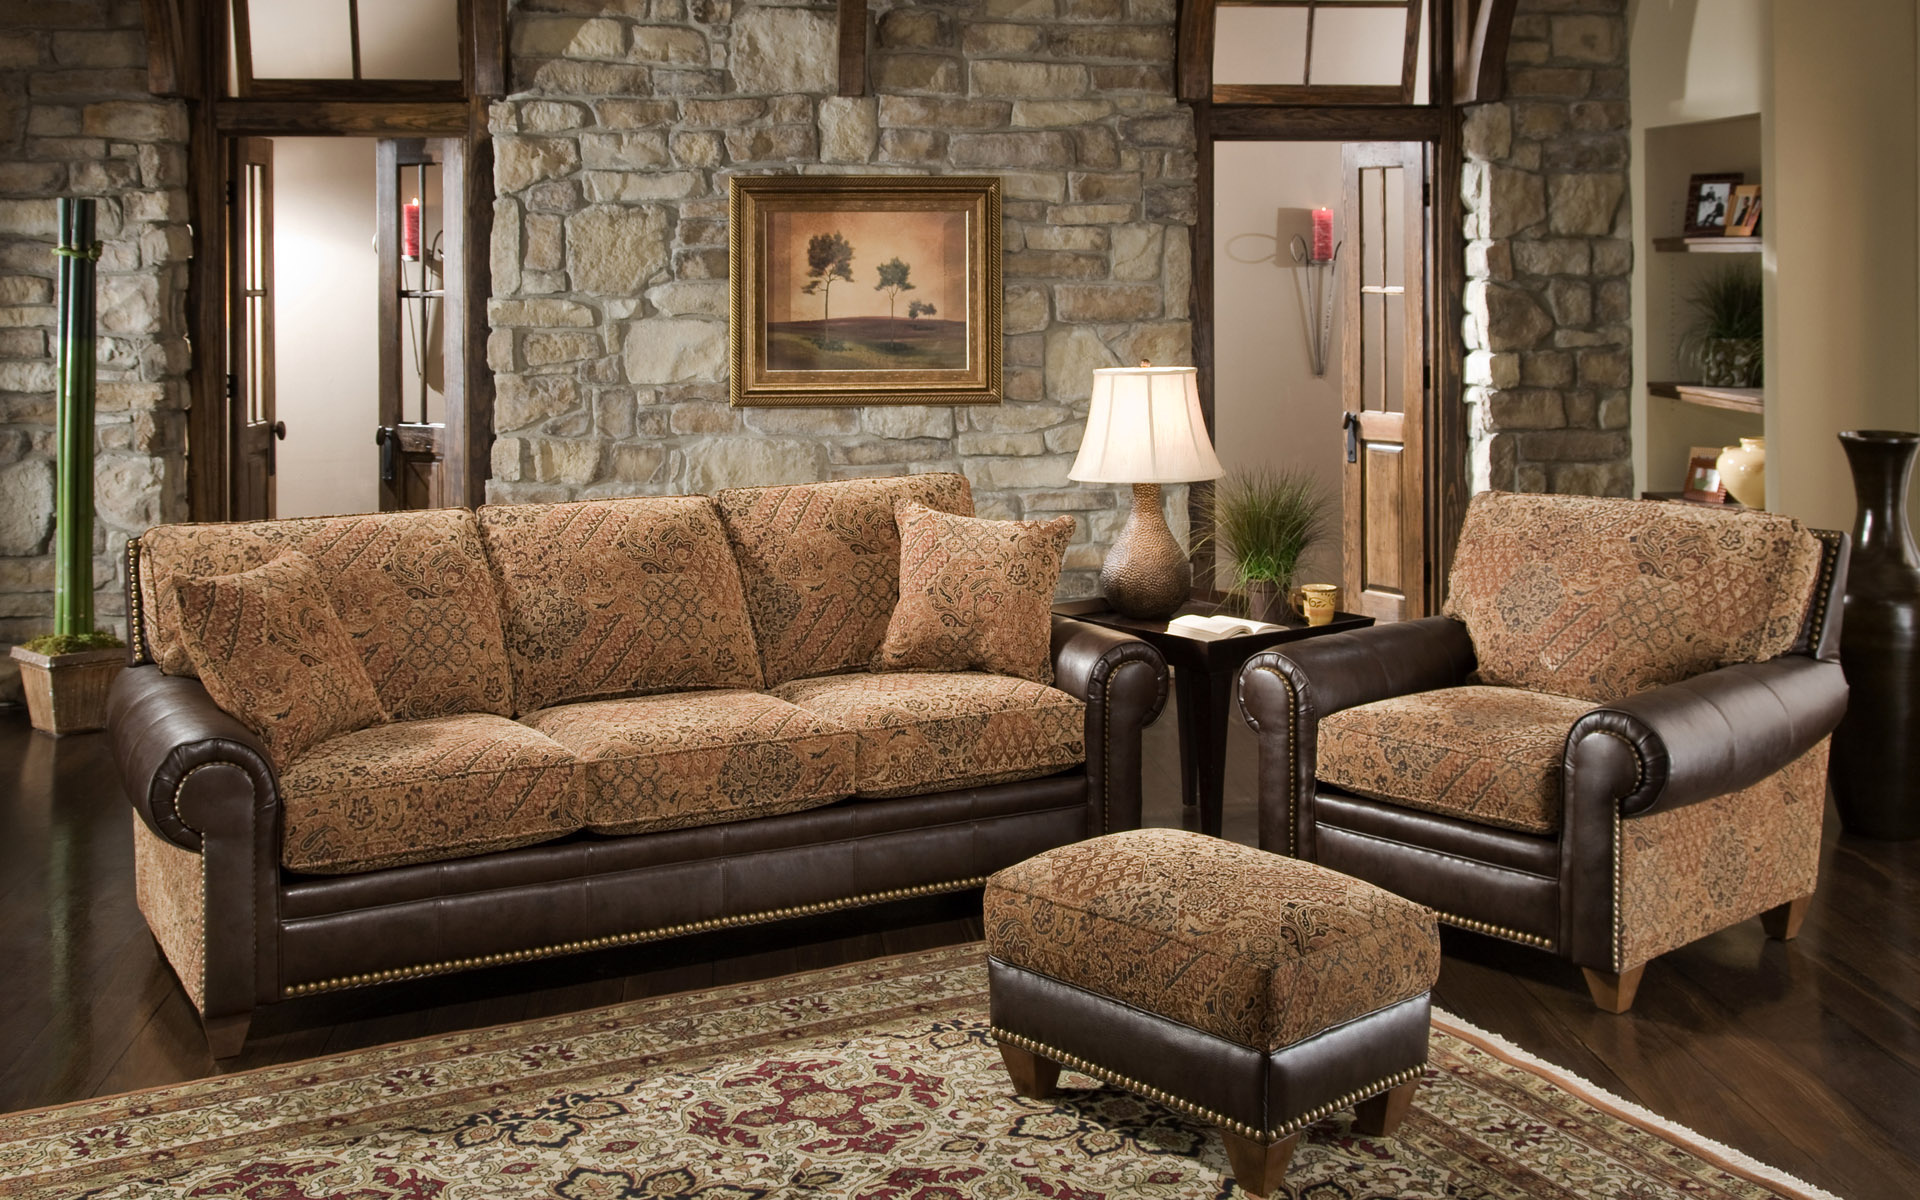 Sofa Set For Drawing Room In Pakistan Furniture Full Hd Wallpaper And Background Image